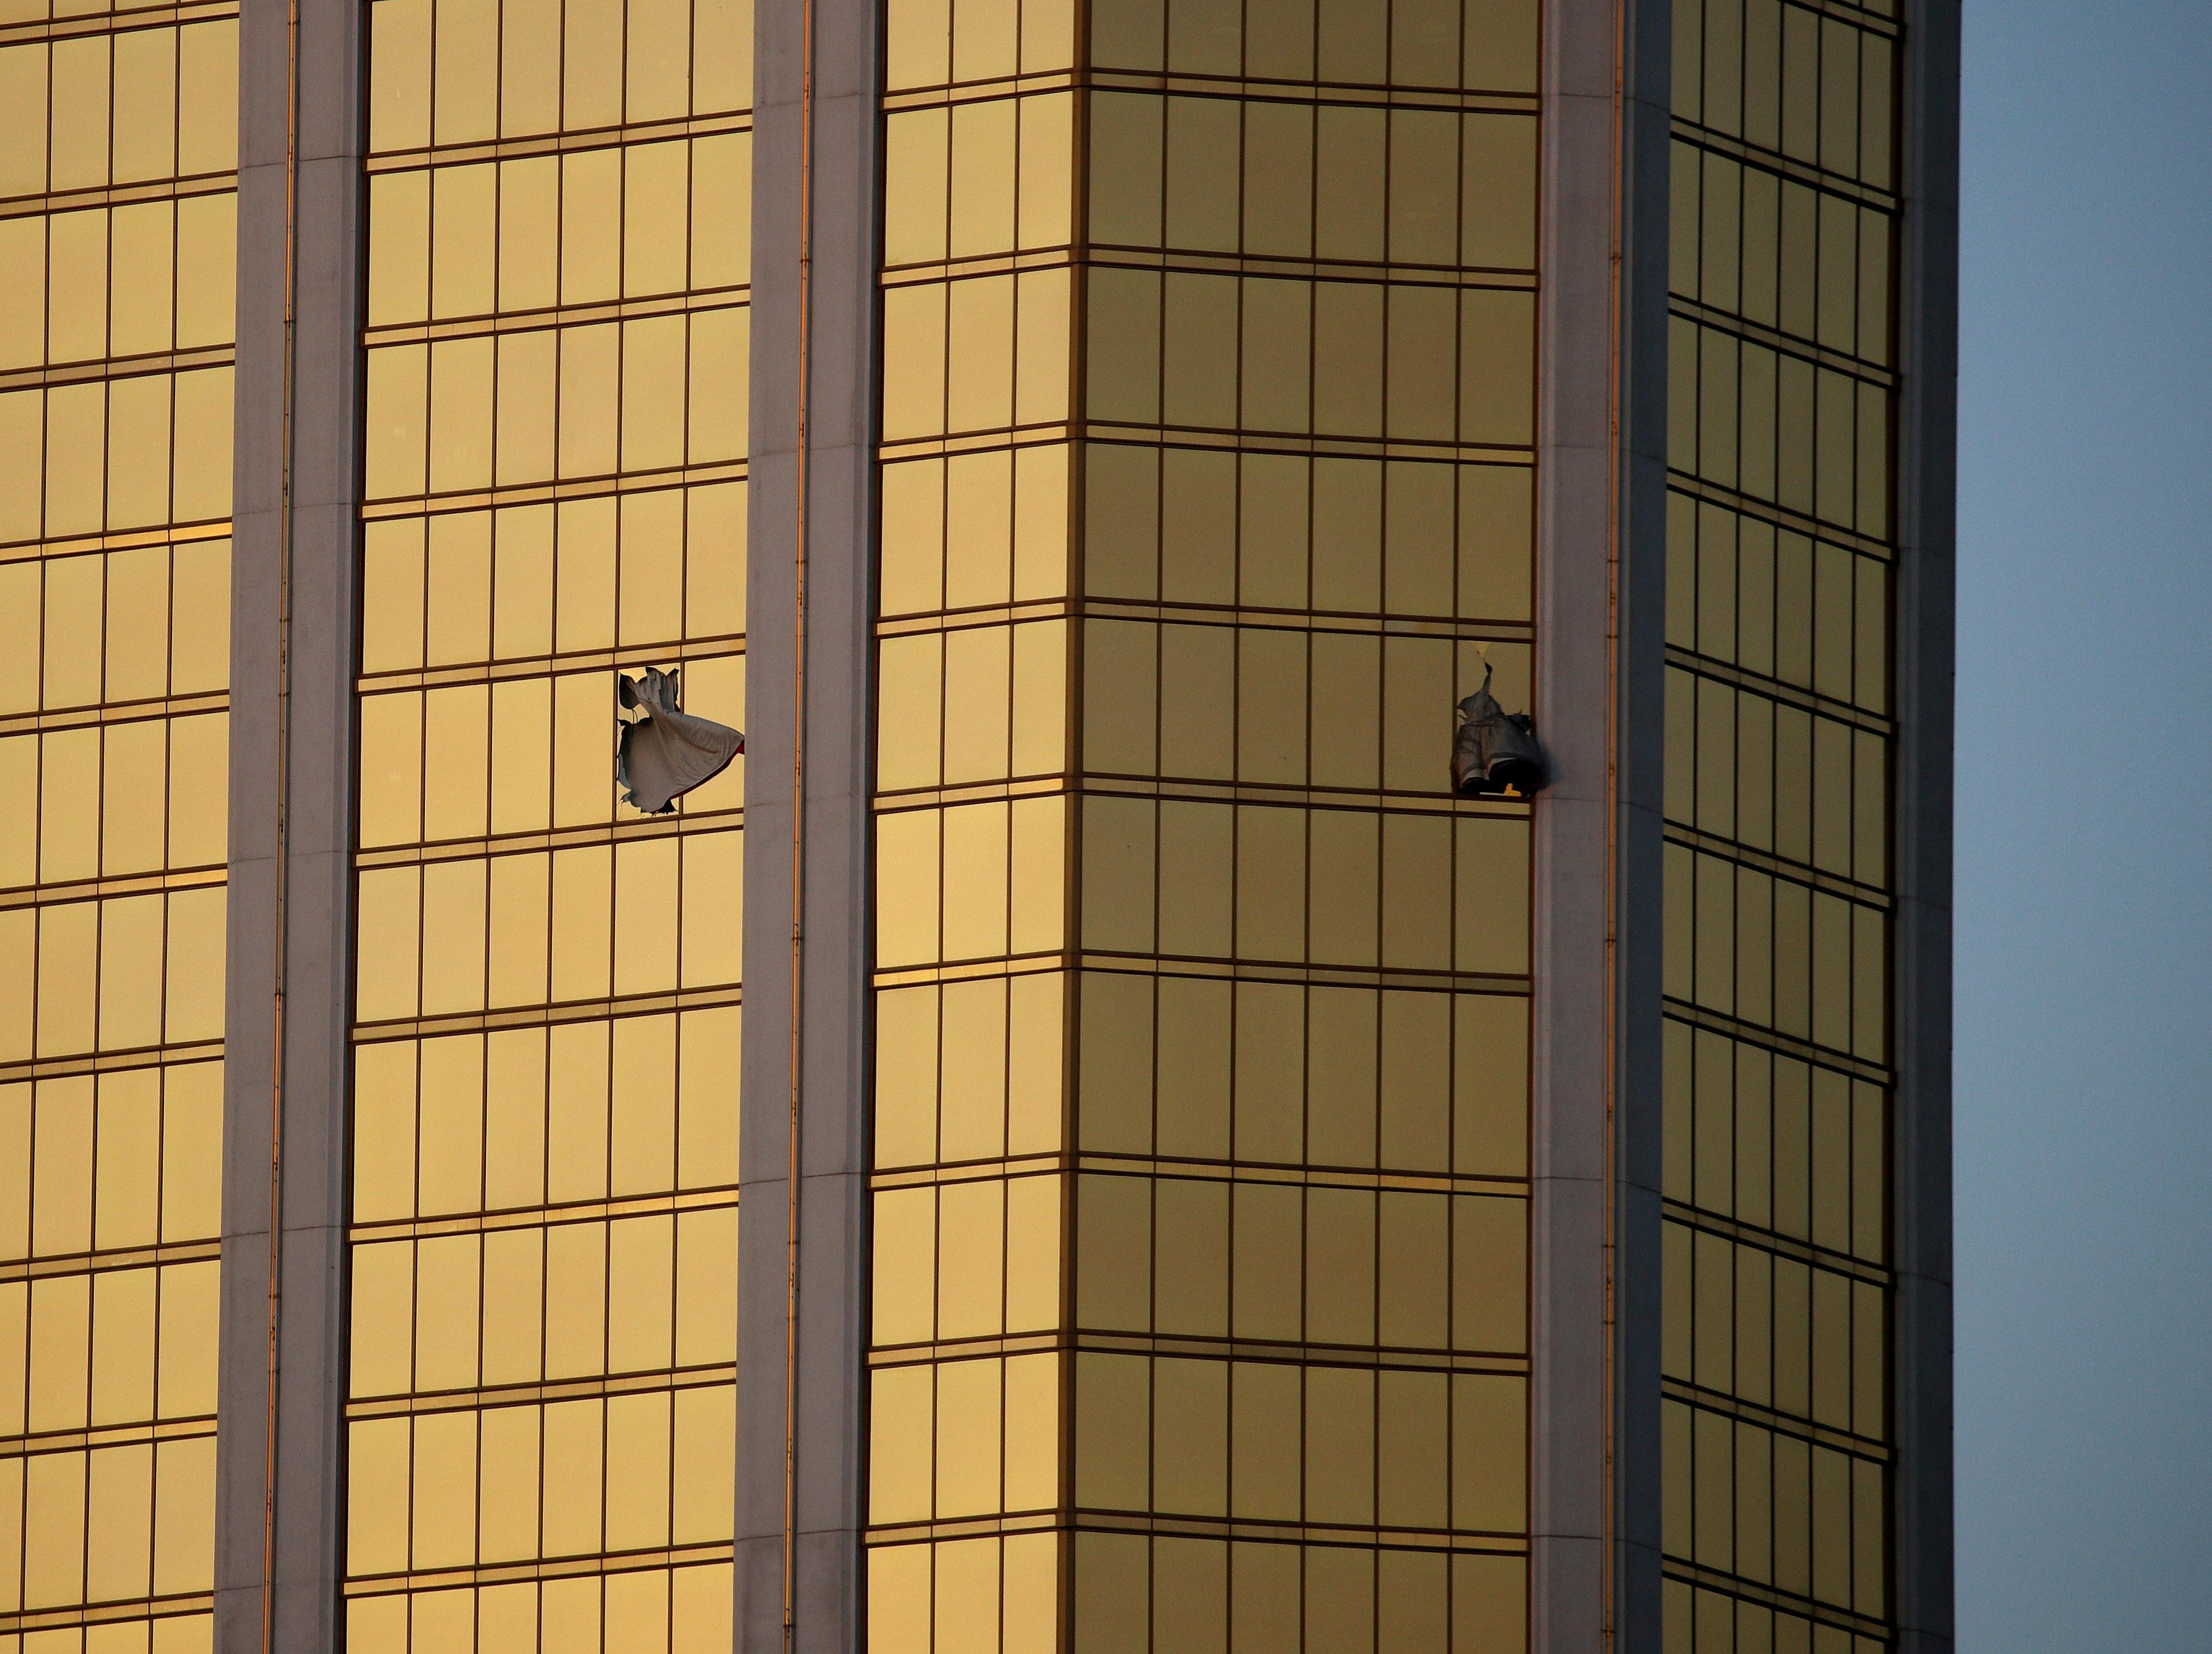 Drapes billow out of broken windows at the Mandalay Bay resort and casino Monday, Oct. 2, 2017, on the Las Vegas Strip following a mass shooting at a music festival in Las Vegas. Authorities say Stephen Craig Paddock broke the windows and began firing with a cache of weapons, killing dozens and injuring hundreds. (AP Photo/John Locher)